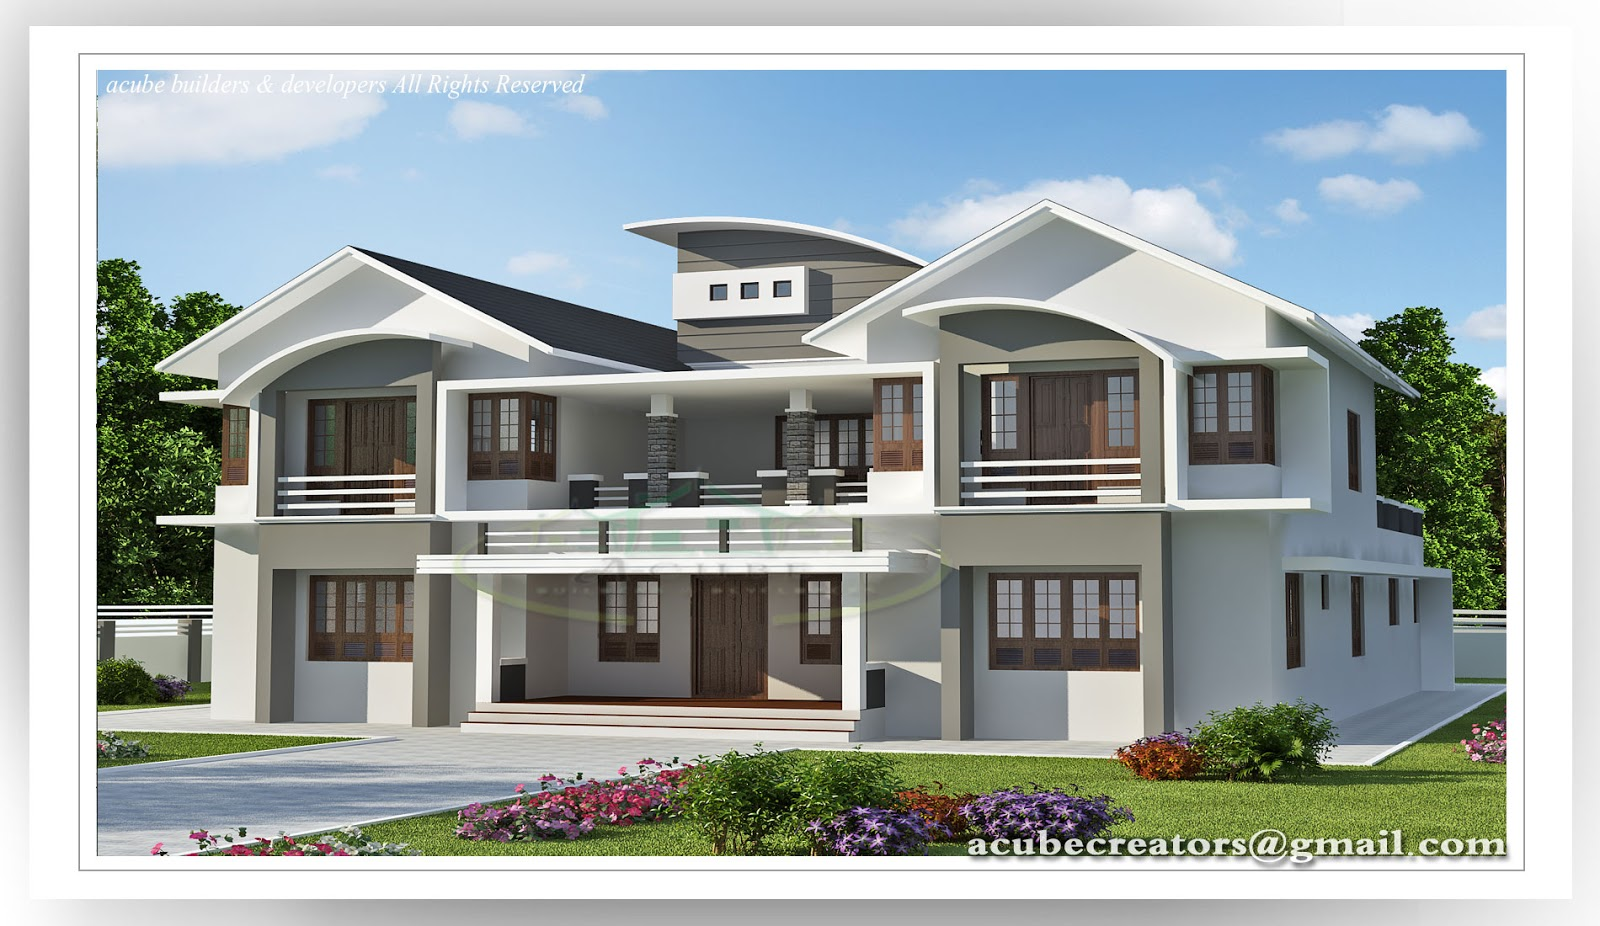 6 bedroom luxury villa design 5091 plan 149 for 6 bedroom house designs